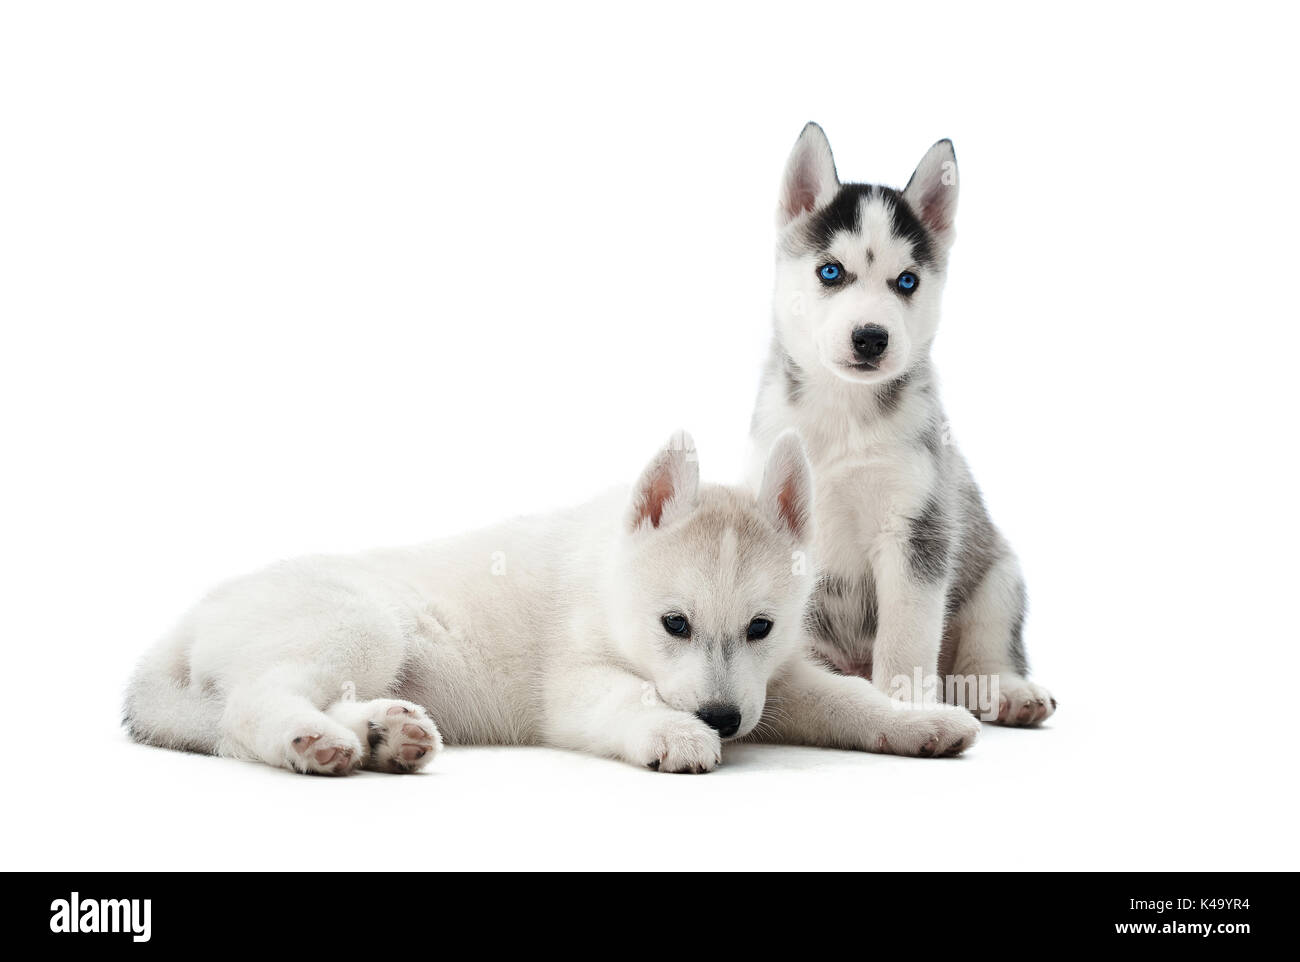 Small puppies siberian husky dogs resting after activity. - Stock Image